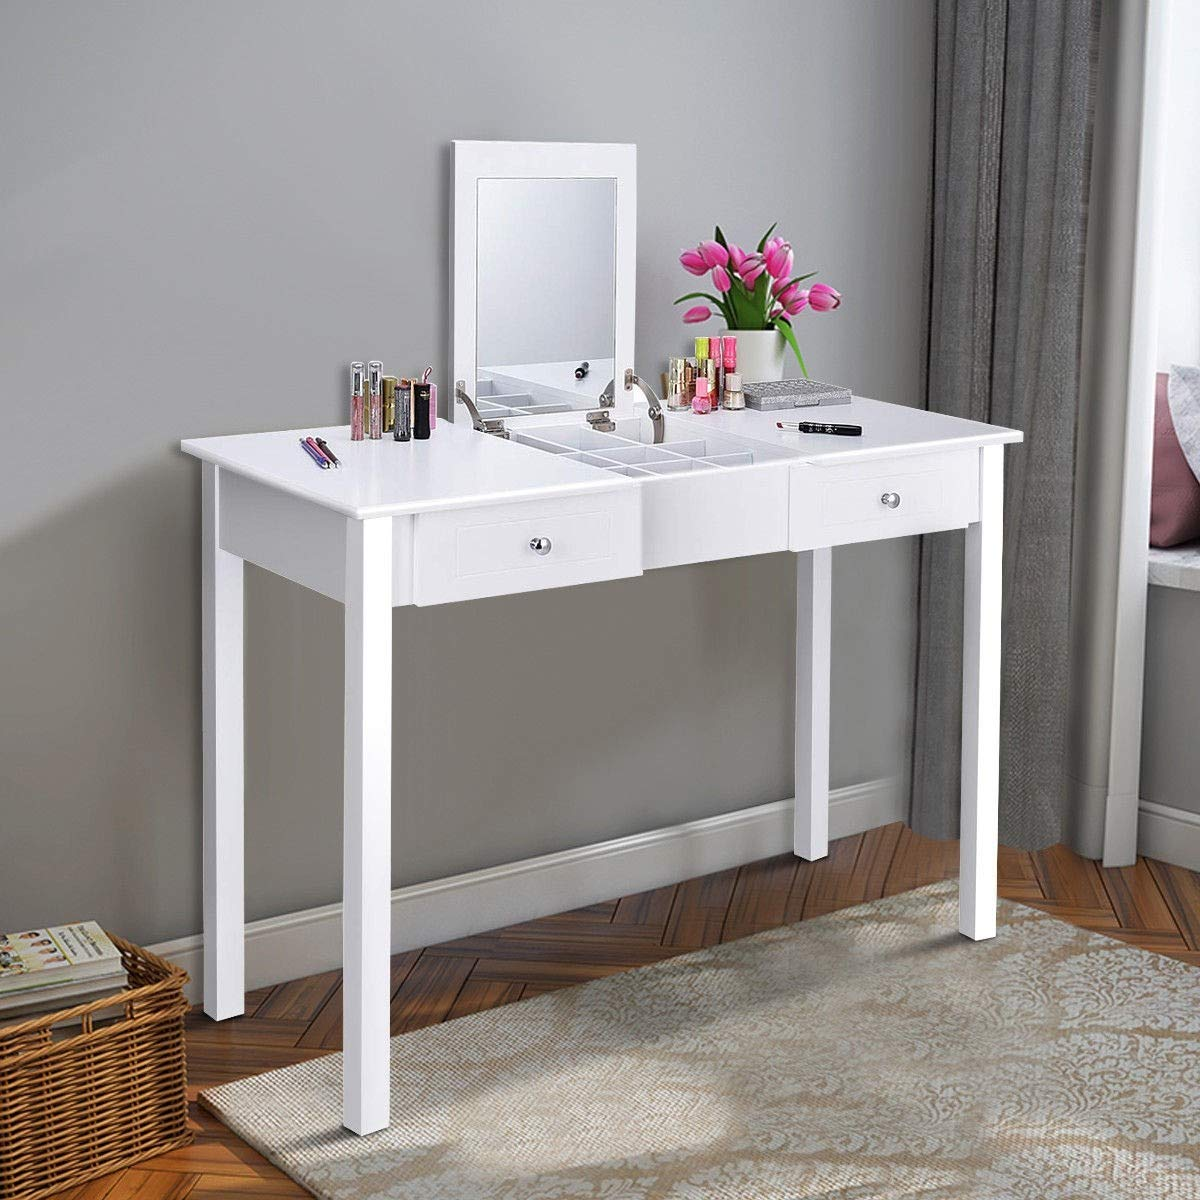 Kanizz Multipurpose Computer Laptop Workstation Flip up Bedroom Vanity Dressing Table 1 Mirror 2 Drawers Desk Accessories Hair Care Dressing Nail Polish Equipment Cosmetic